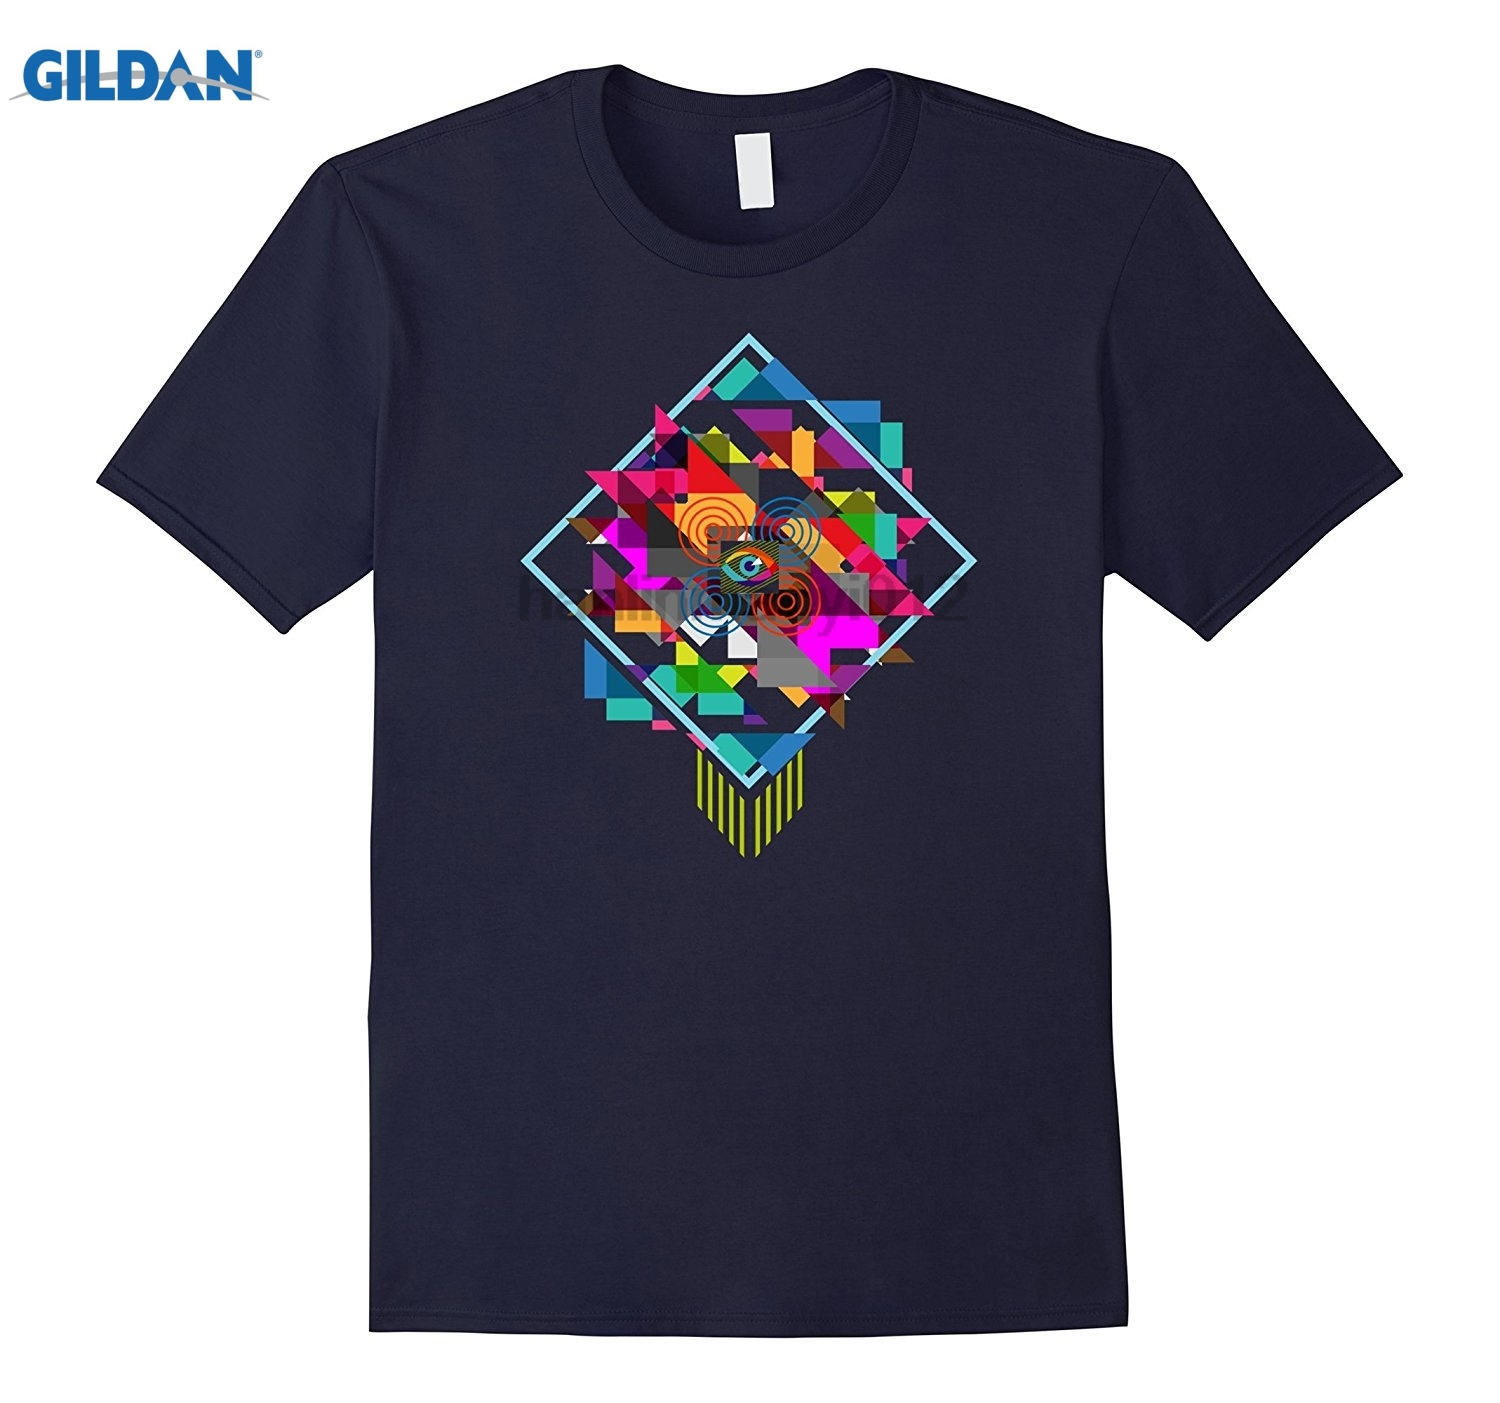 GILDAN Abstract T-shirt, Vector Art Modern Geometric by Zany Brainy Womens T-shirt ...